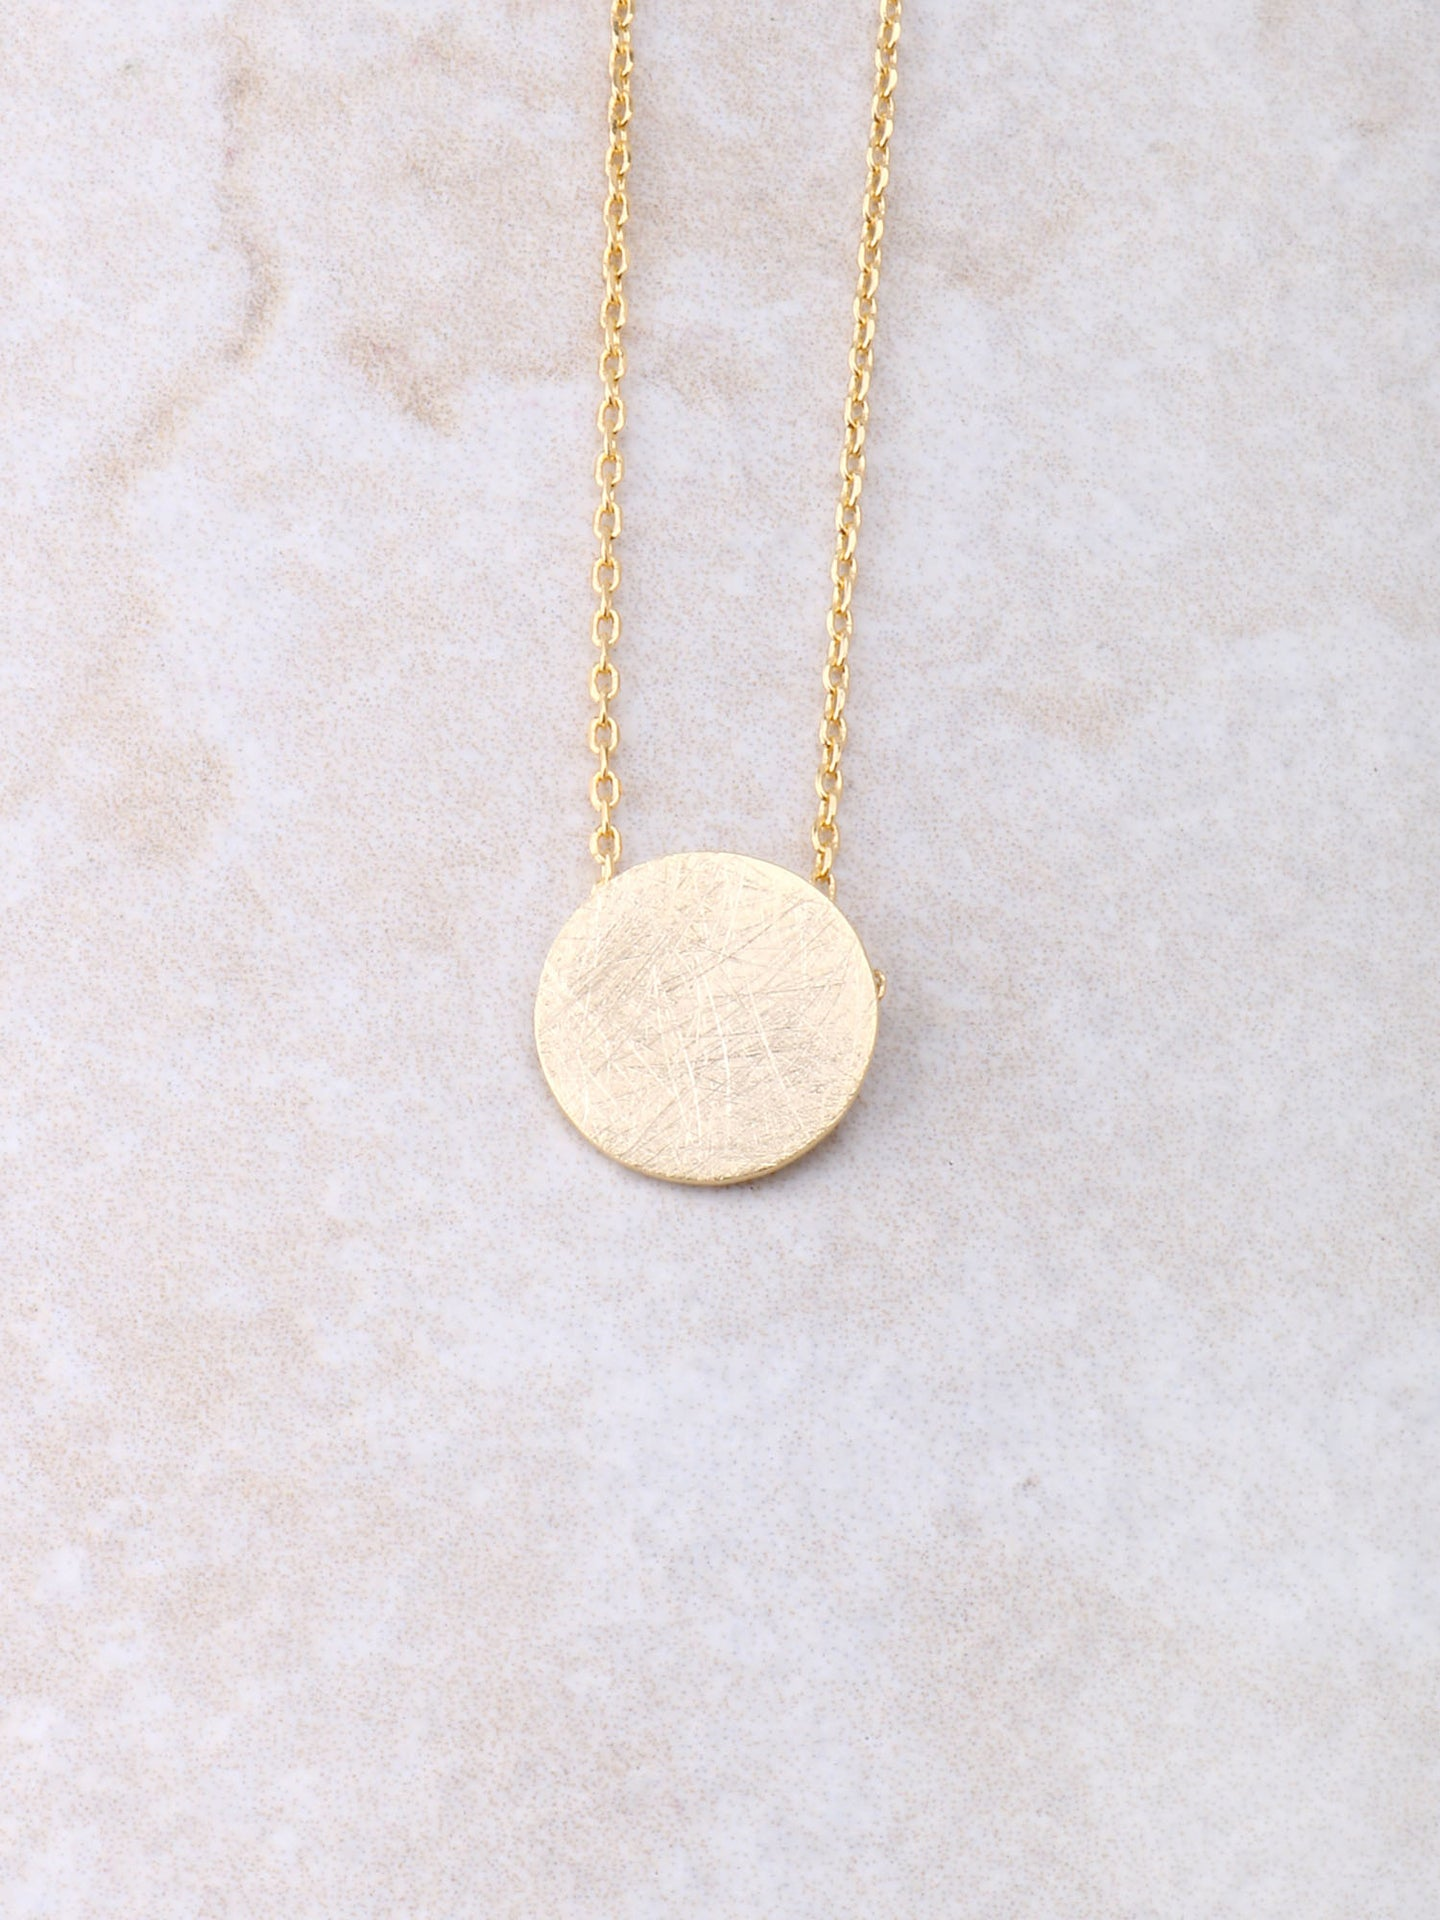 Coin Lucky Necklace Anarchy Street Gold